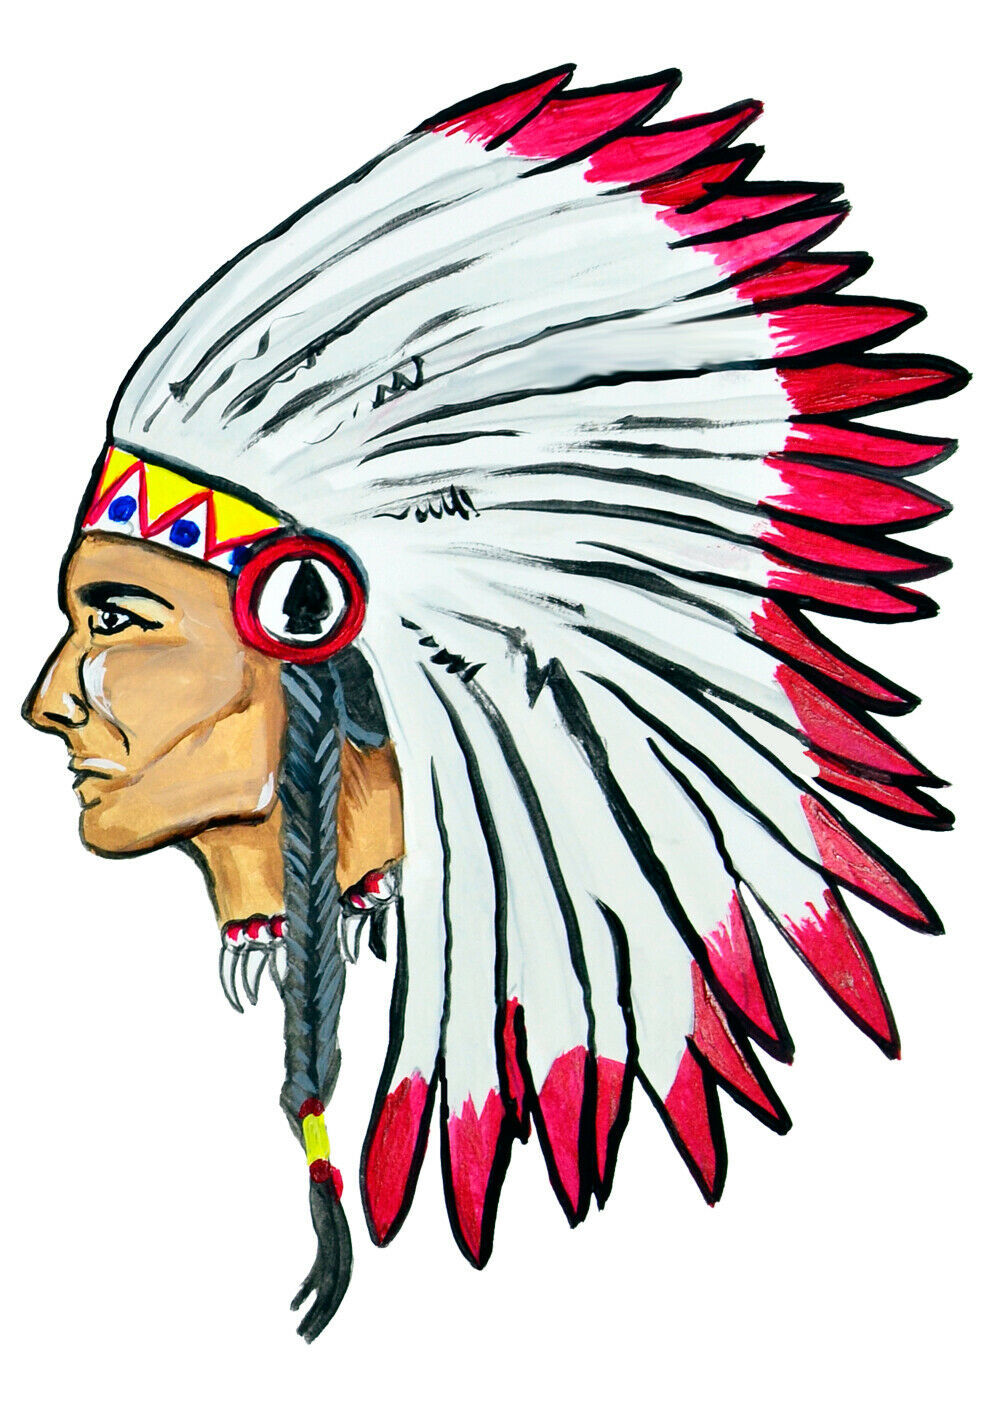 Big Indian Chief Head Sticker Decal Home Office Dorm Wall Exclusive Art Tablet - $5.99 - $14.95